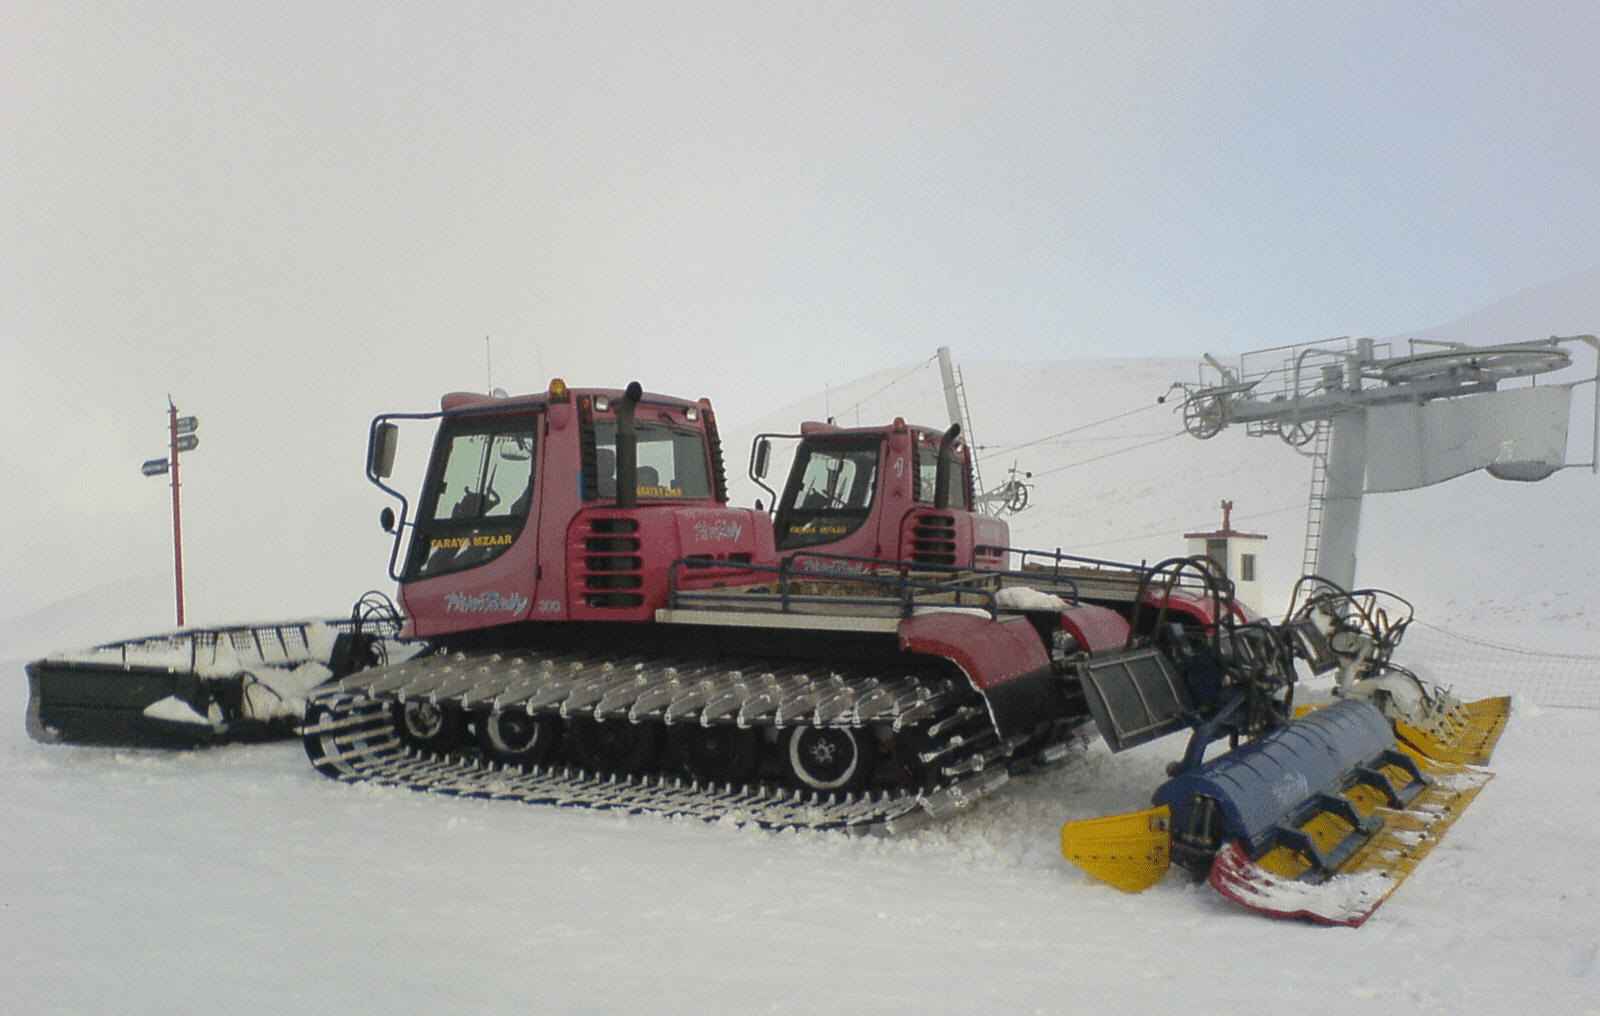 Ski slope grooming machines at Jonciton slope of the Faraya Mzaar ski resort in Lebanon